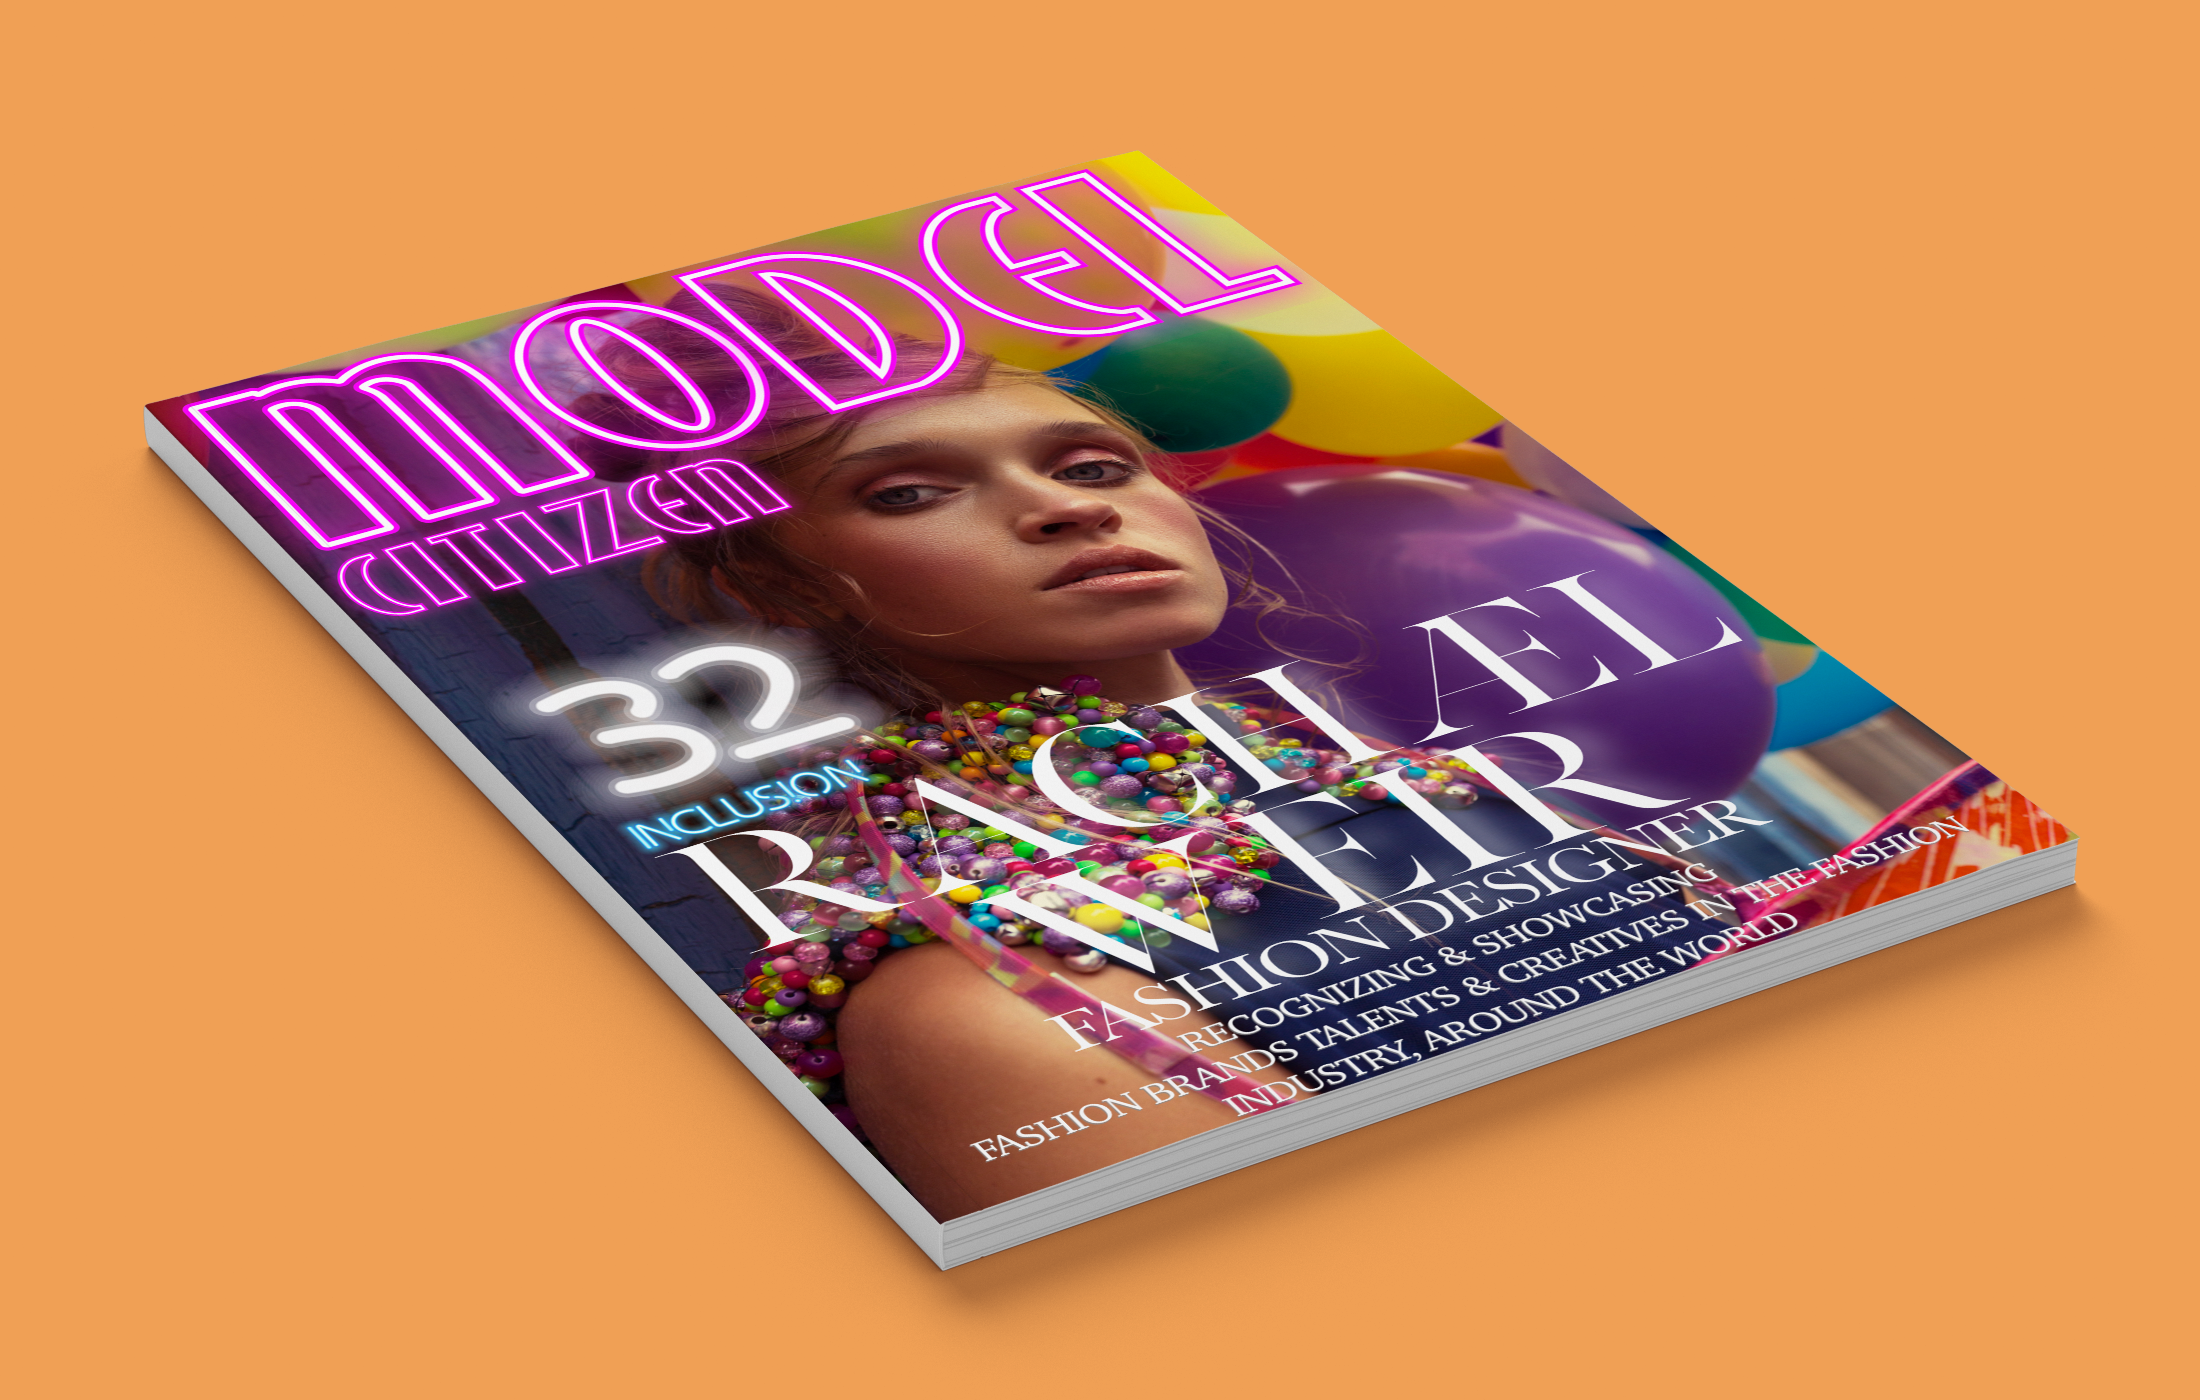 the-best-of-model-citizen-magazine-by-macky-suson-the-most-inclusive-fashion-magazine-52.png